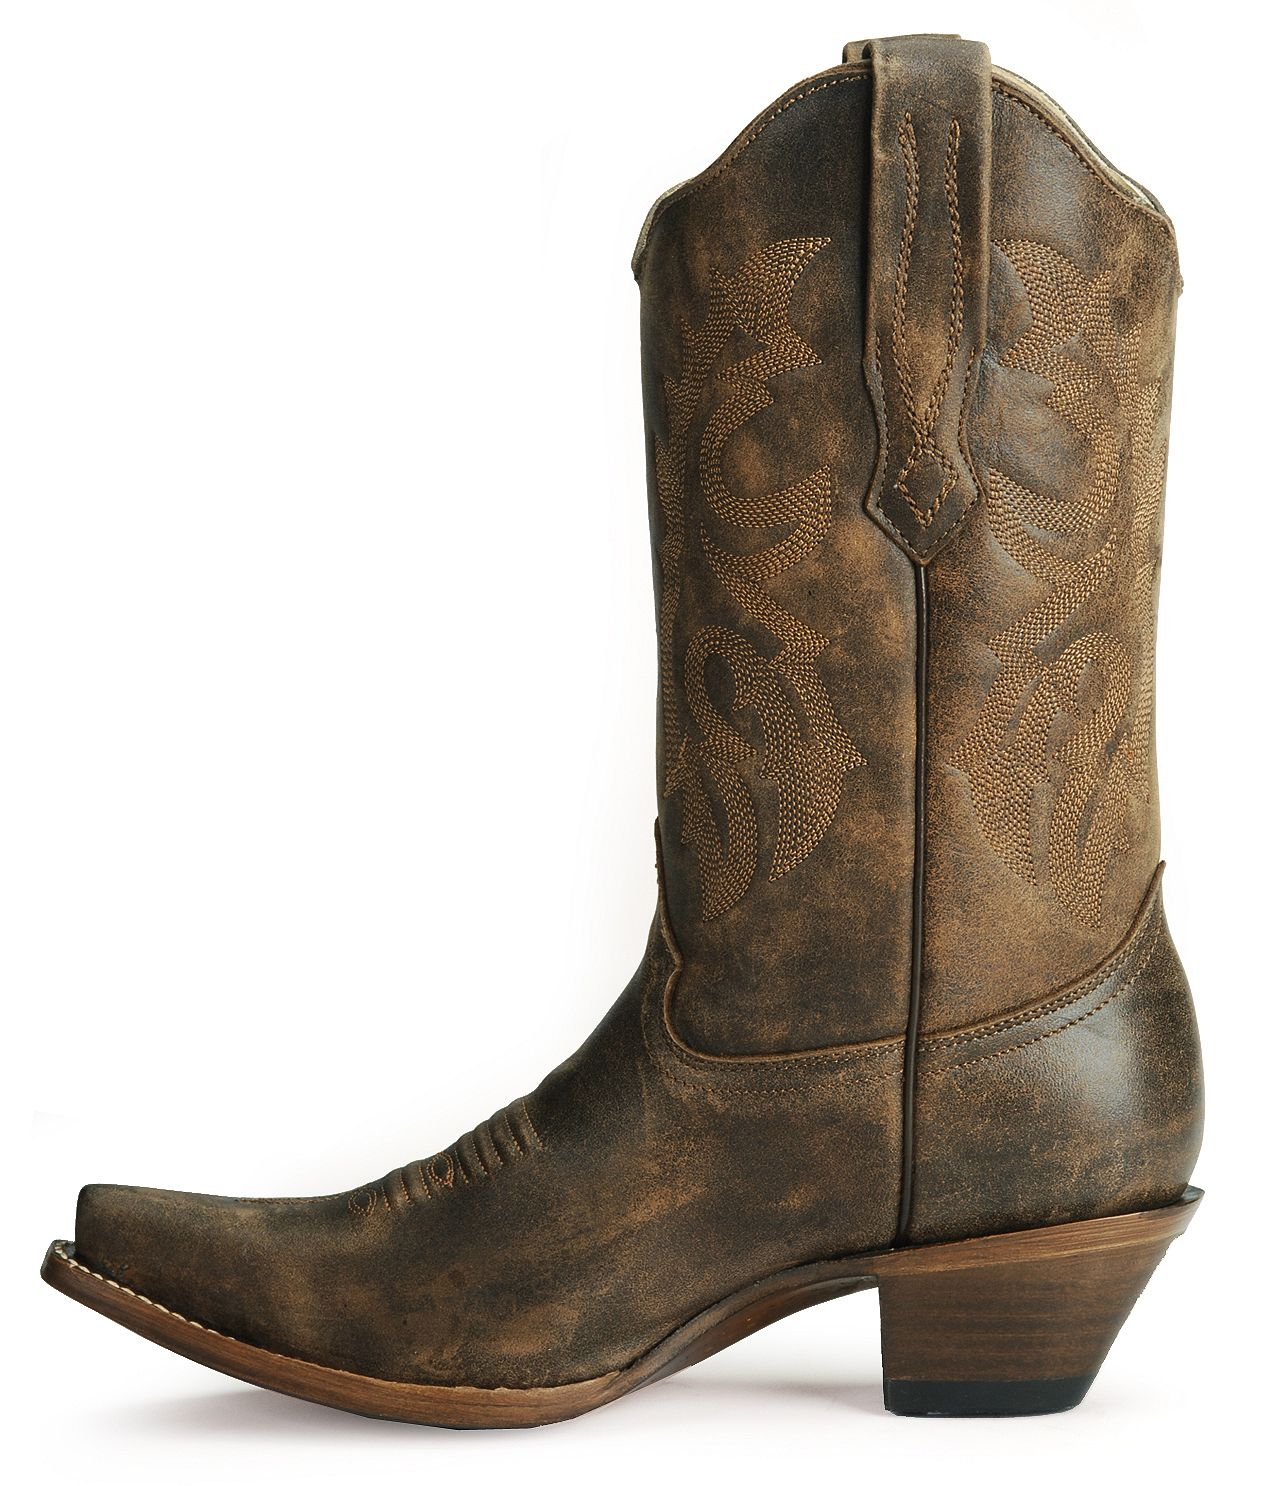 Corral Distressed Leather Western Cowgirl Boots - Snip Toe ...